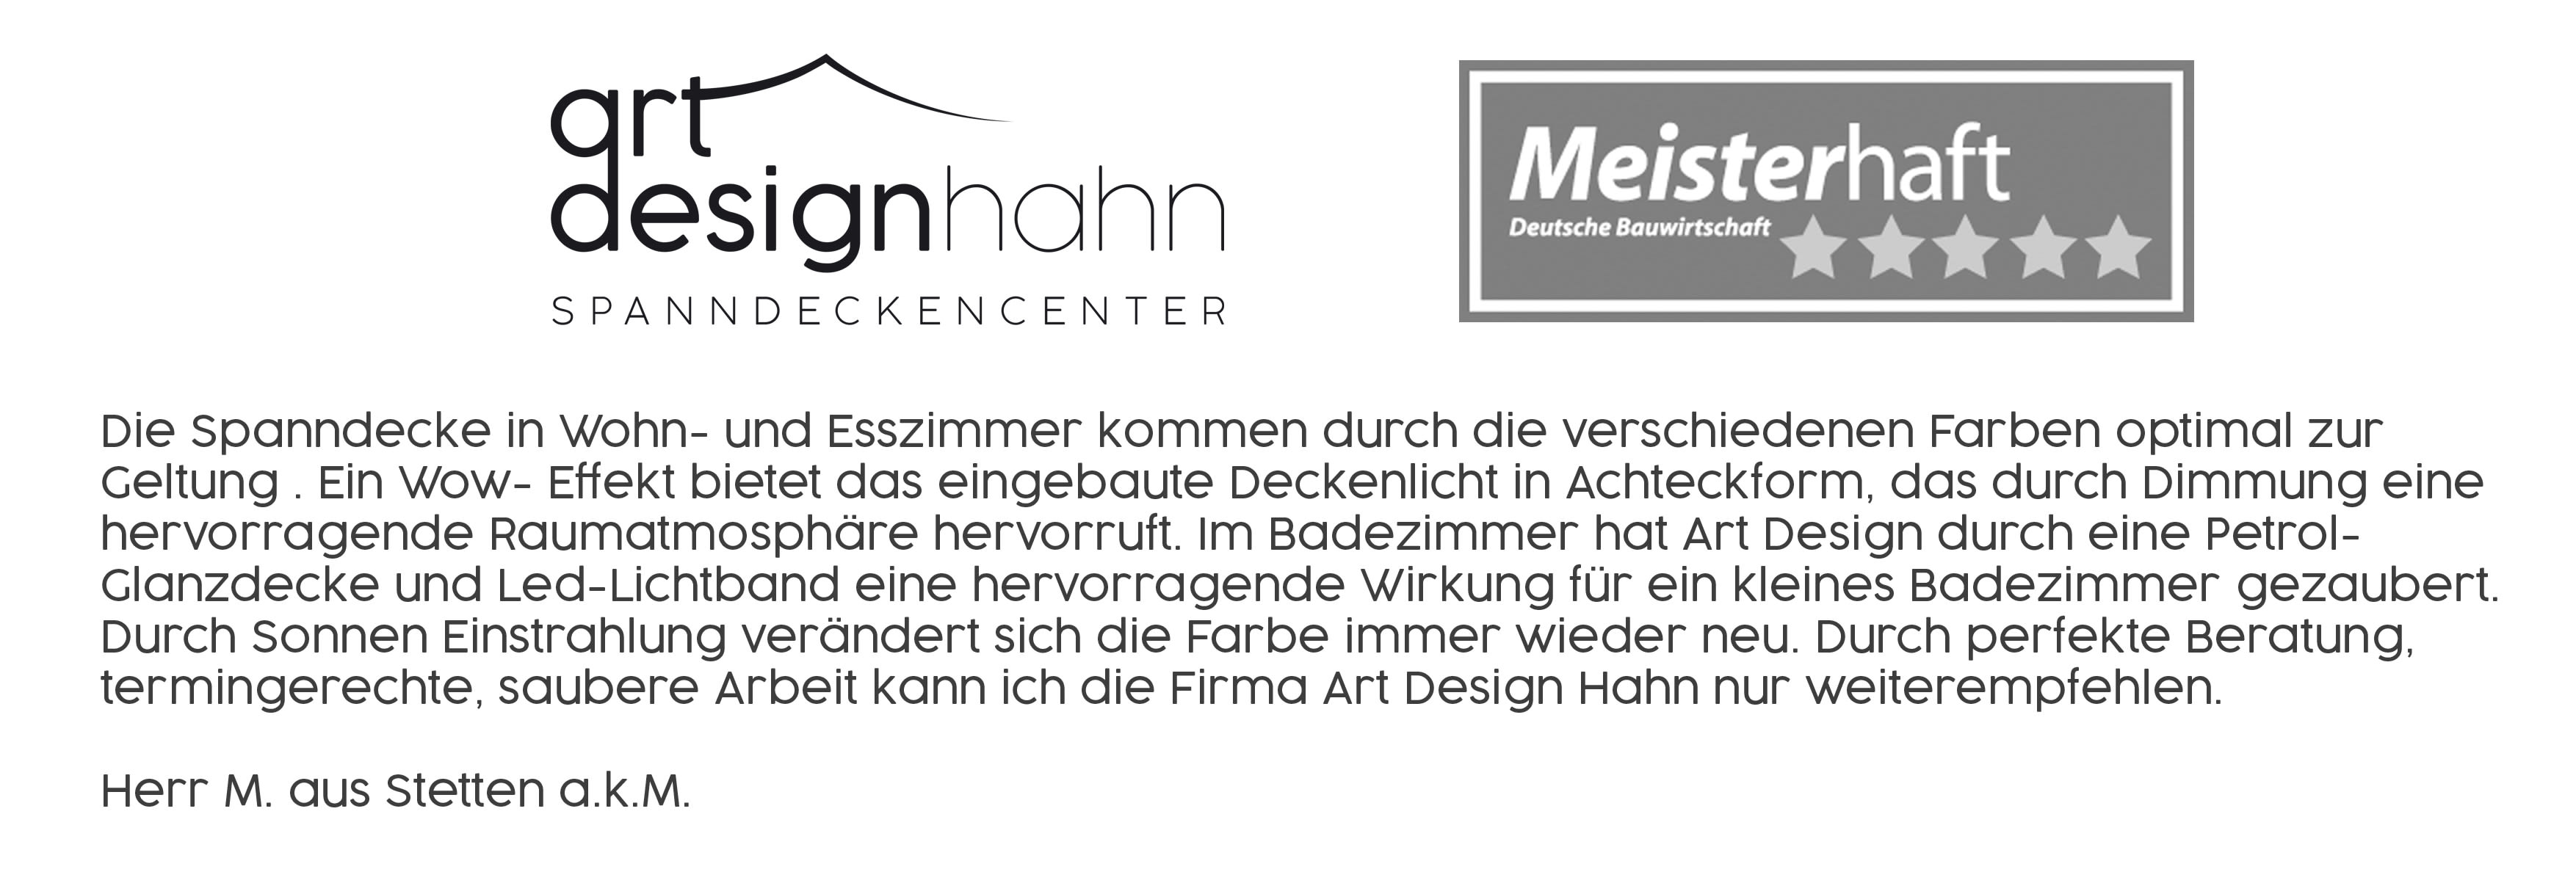 Art Design Hahn Meisterhafte Rezension 35